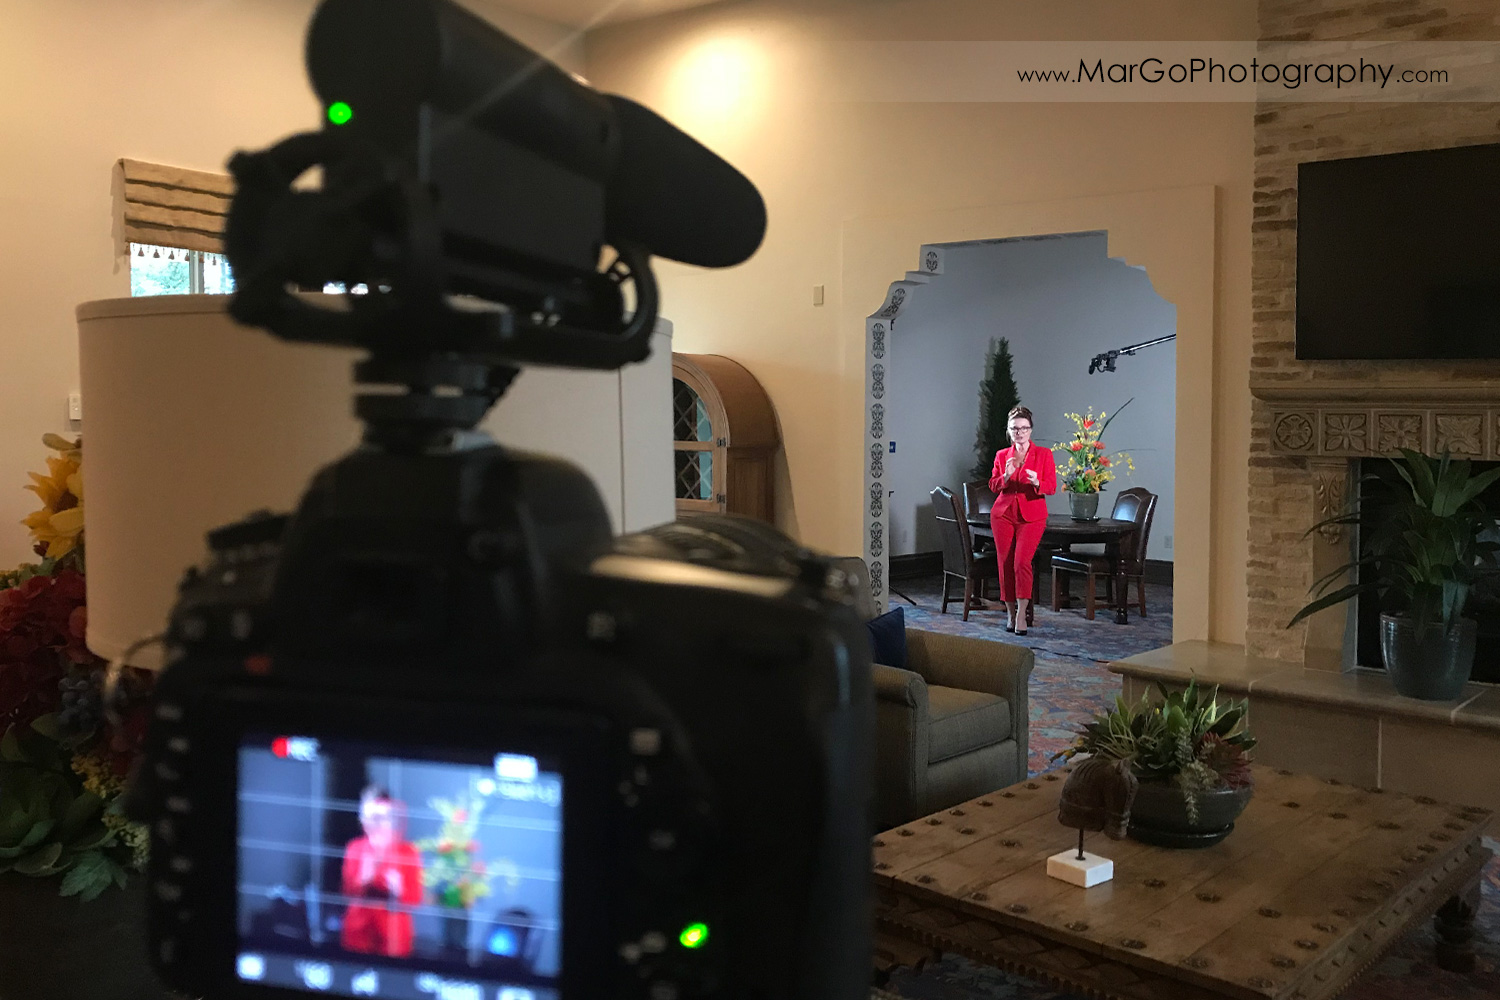 behind the scenes of indoor filming speaker in red suit - focus on woman standing in front of the table